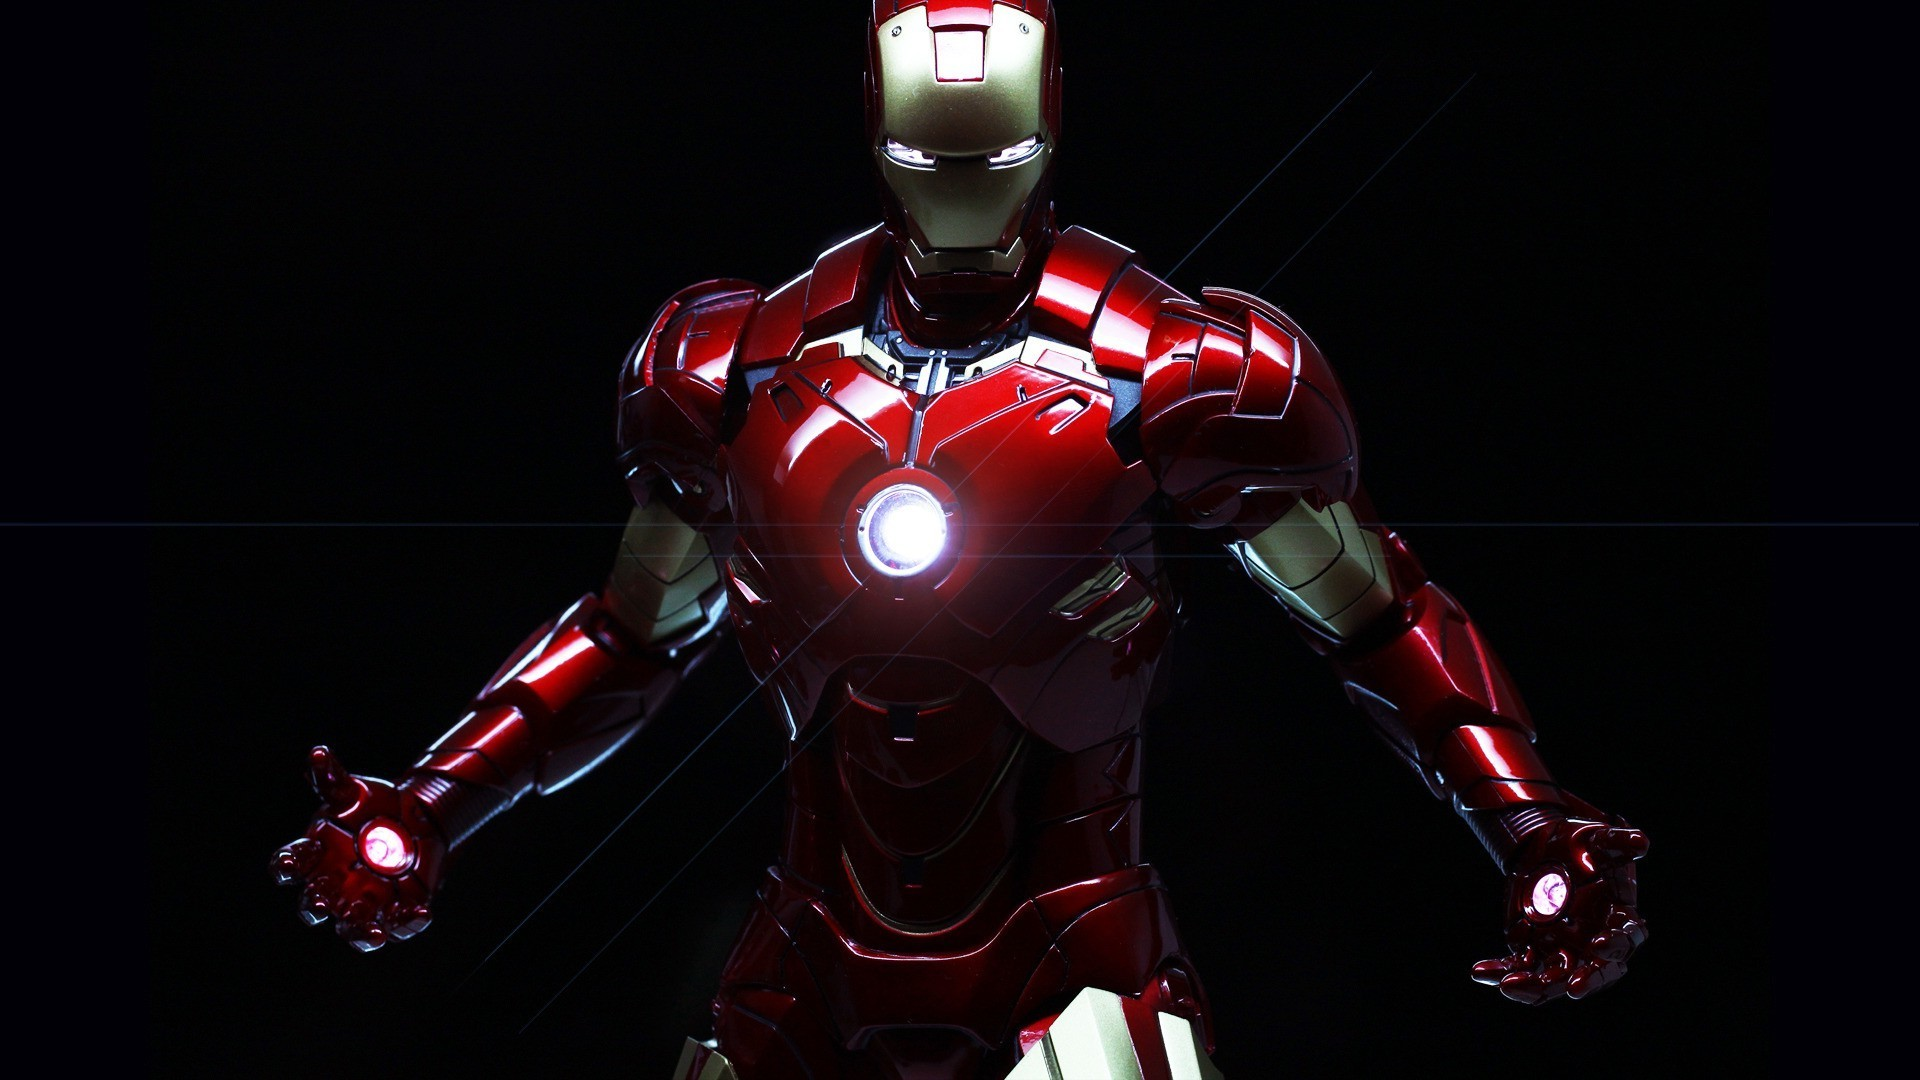 48 Hd Iron Man Wallpaper On Wallpapersafari